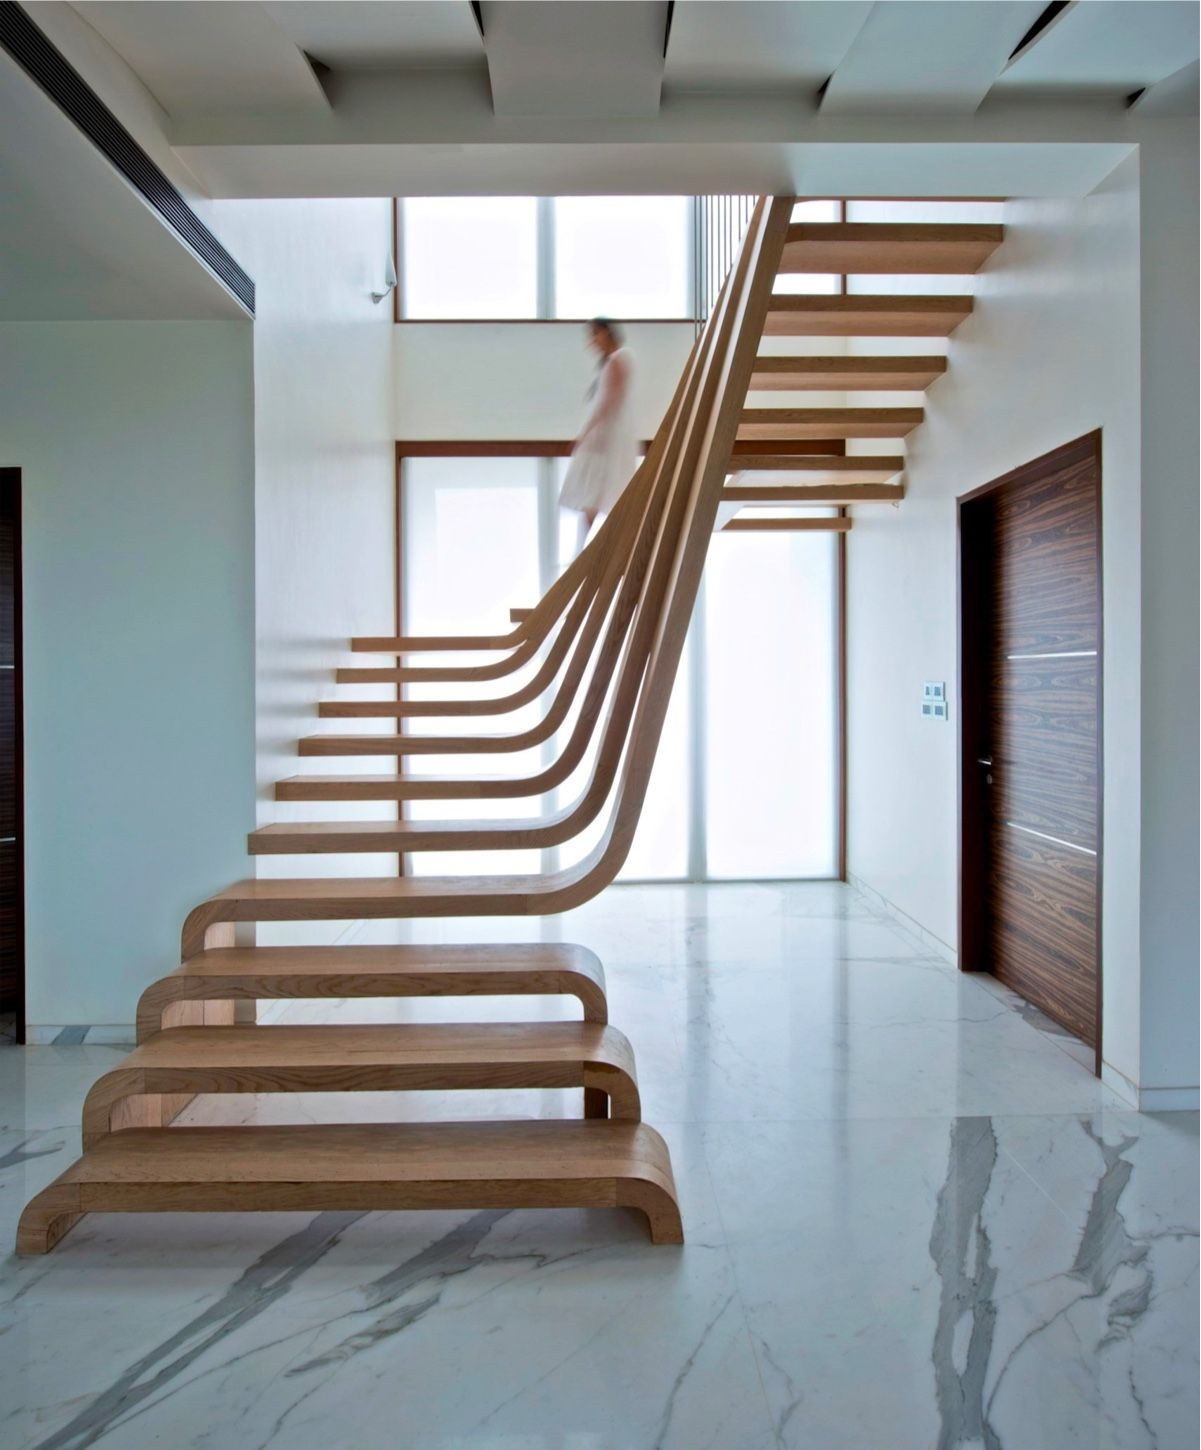 Homedesigning Via 25 Unique Staircase Designs To Take | Stairs For House Design